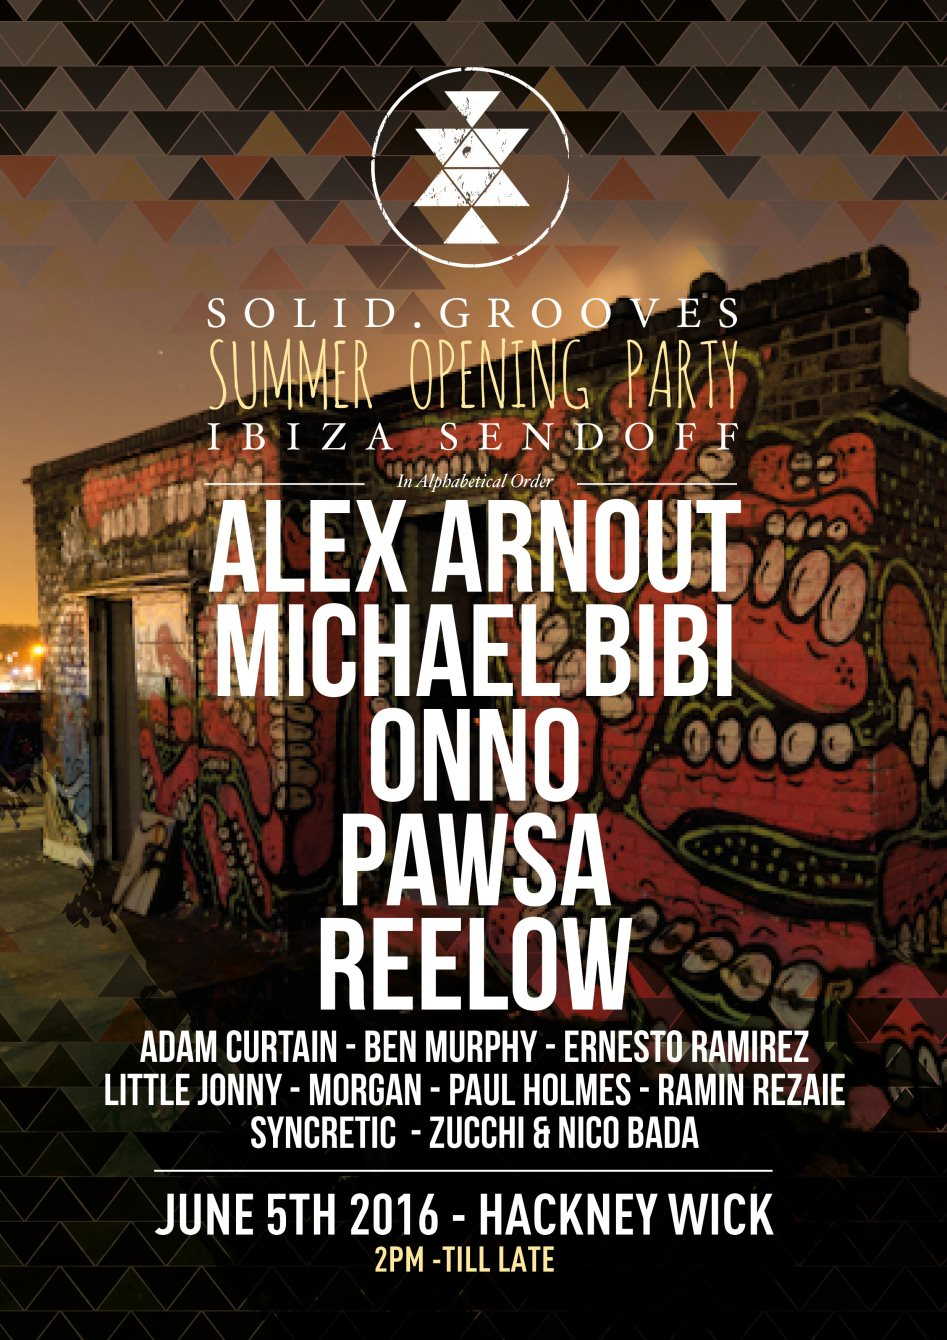 Solid.Grooves - Hackney Wick - Summer Opening Party - Flyer front